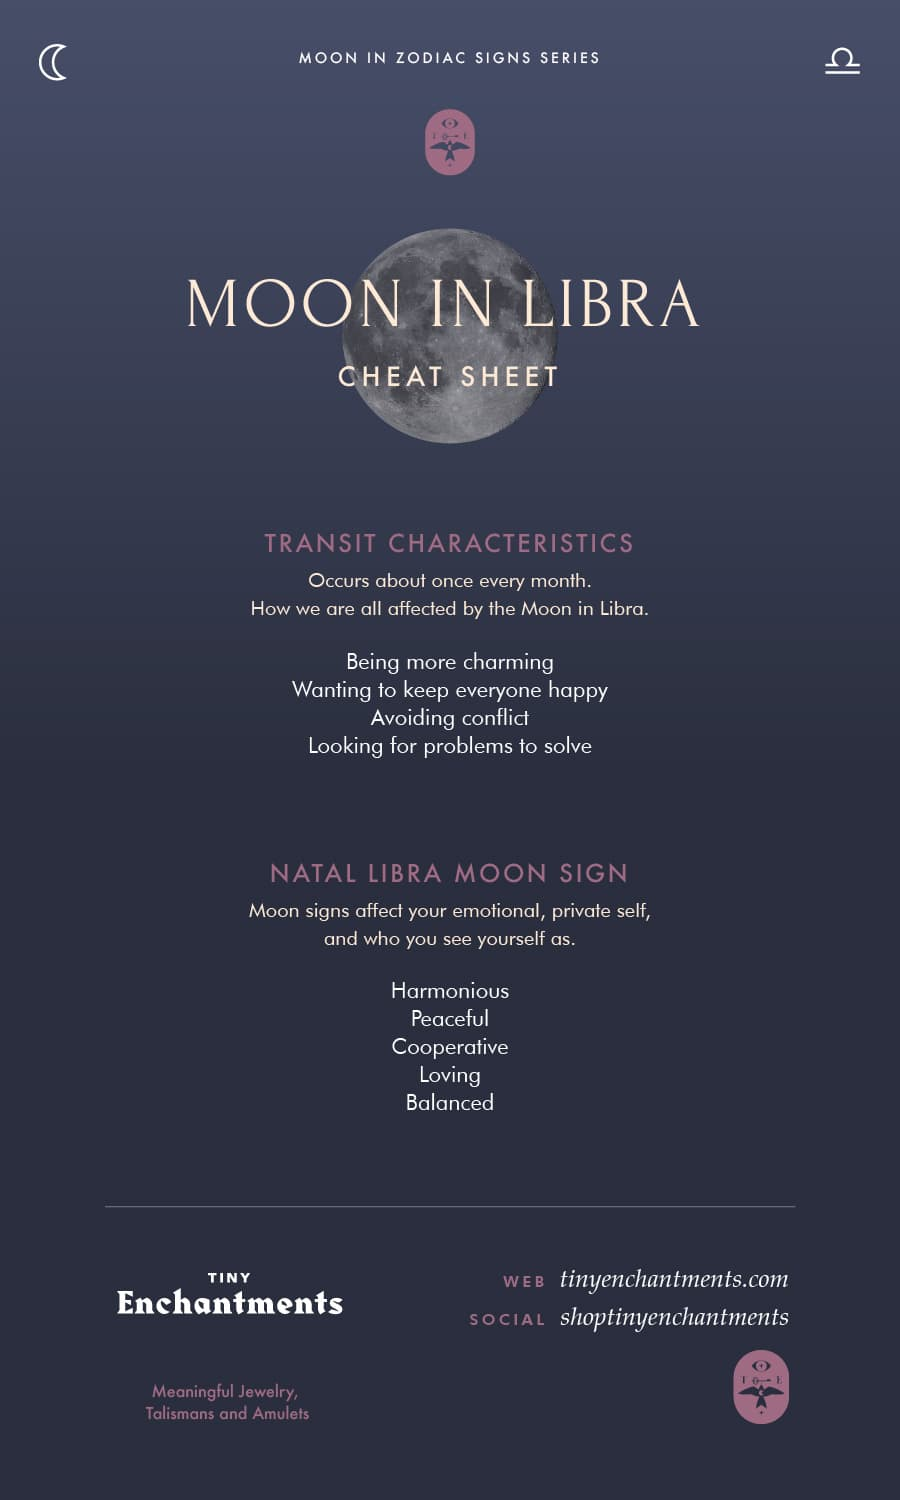 Libra Moon Sign and Moon in Libra Transit Meanings Infographic